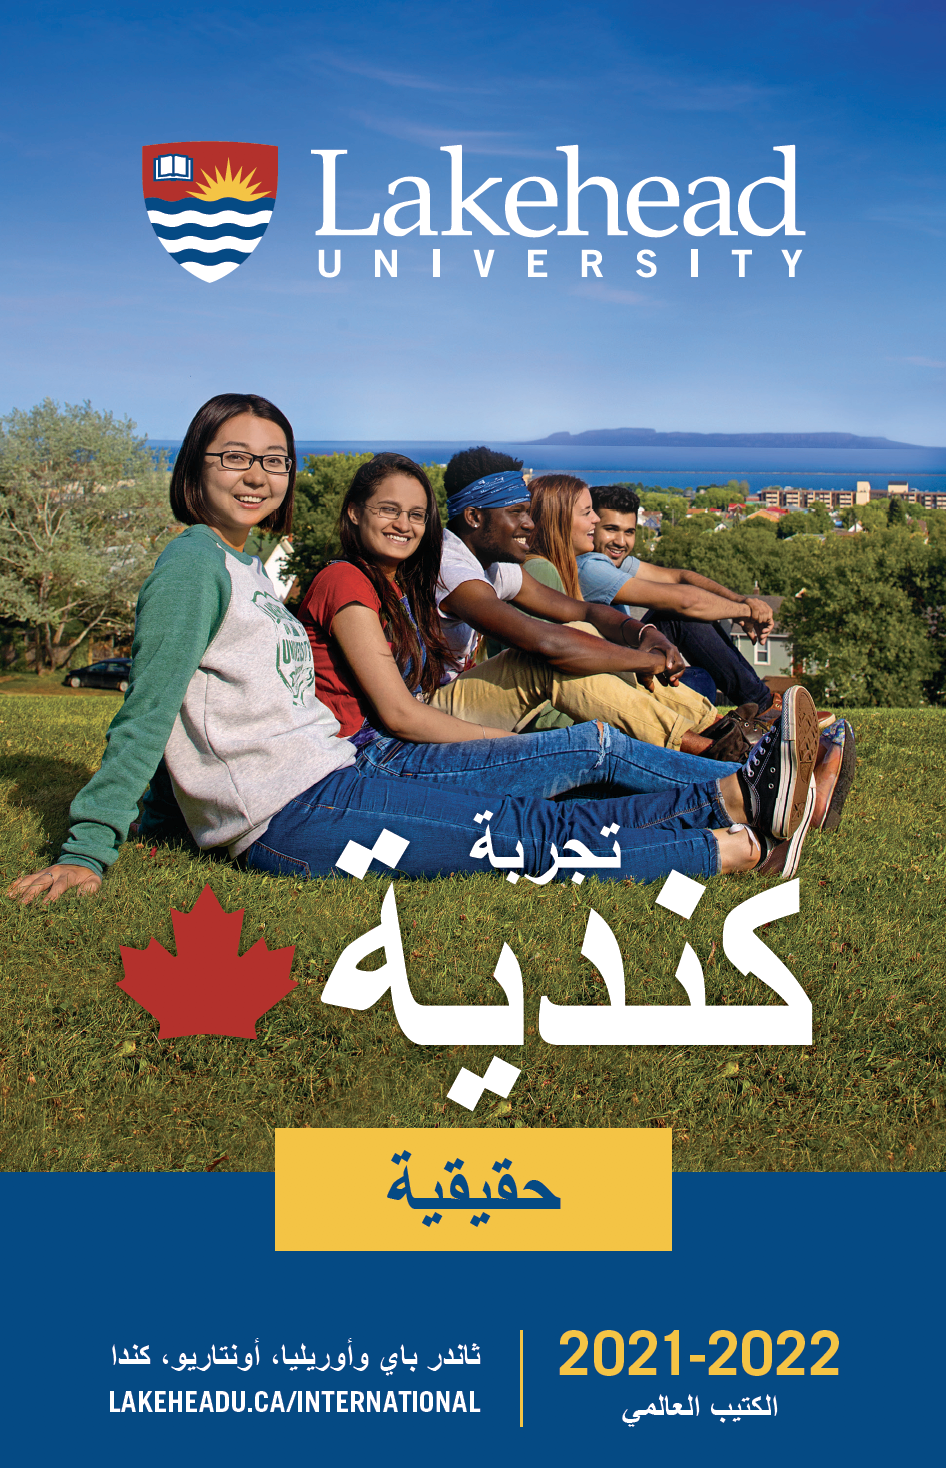 The cover of the 2021 Lakehead International Brochure in Arabic.